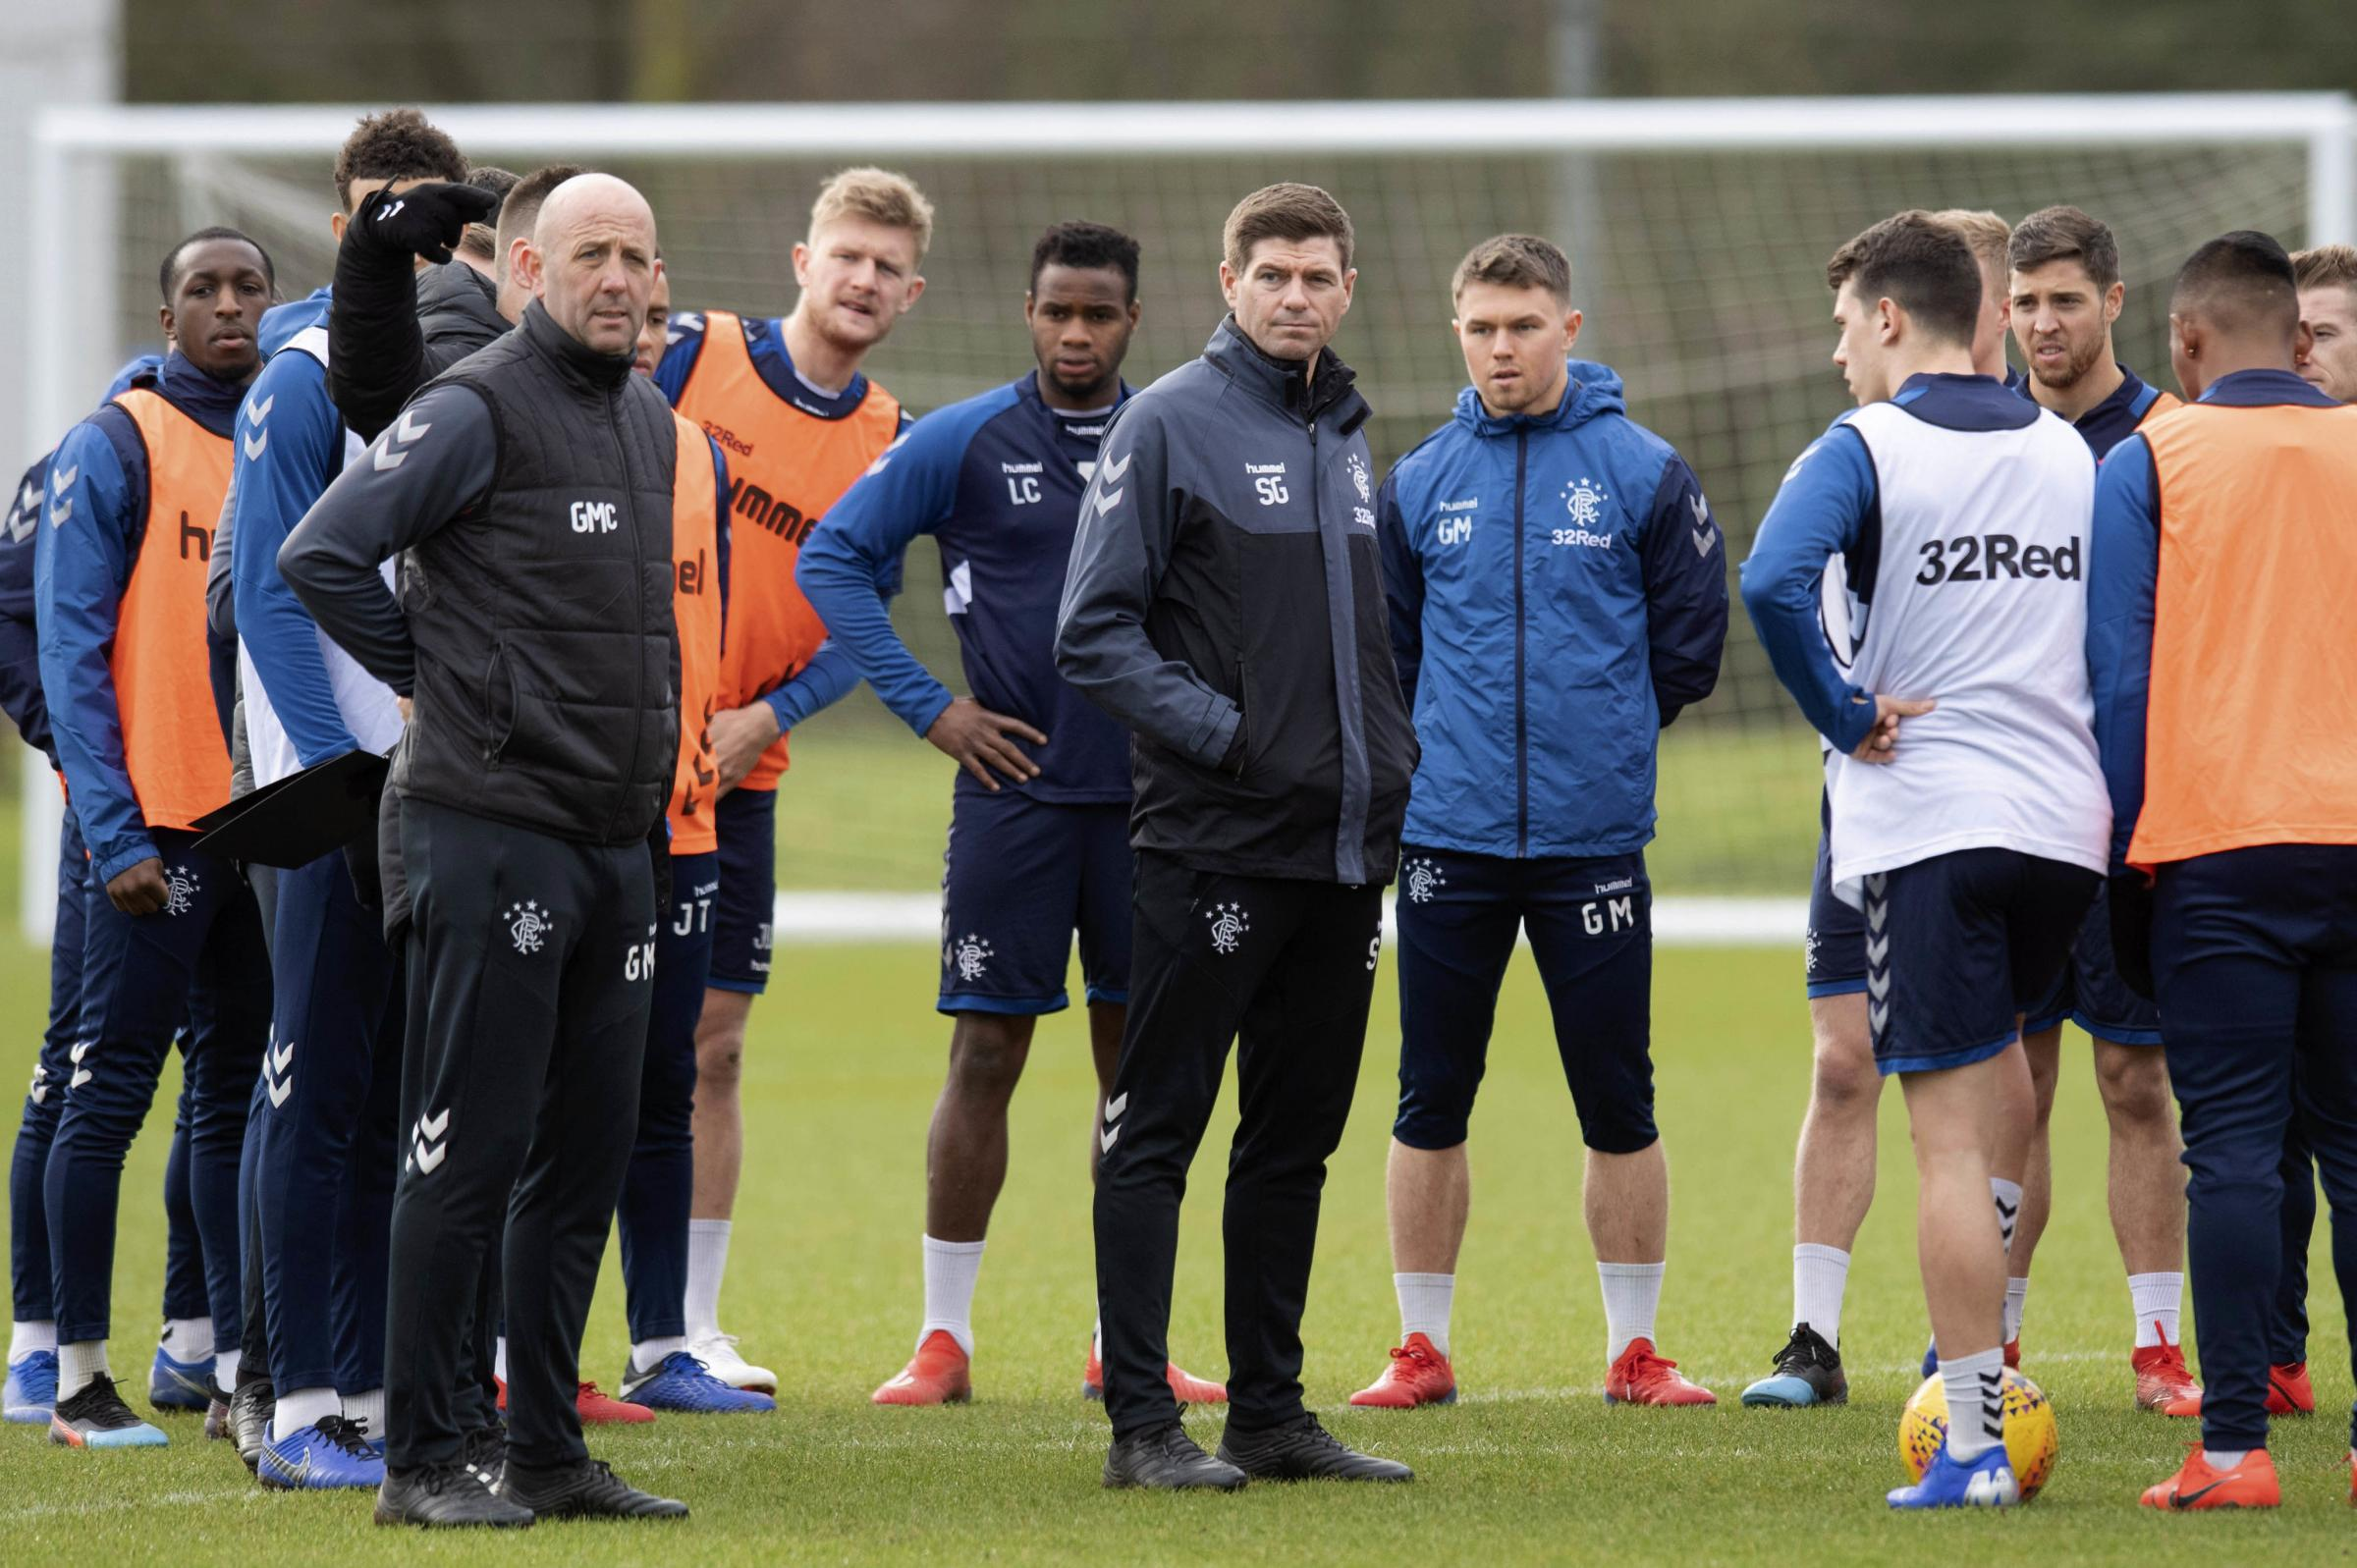 Steven Gerrard will be open and honest with his Rangers players as he strives for Ibrox improvements